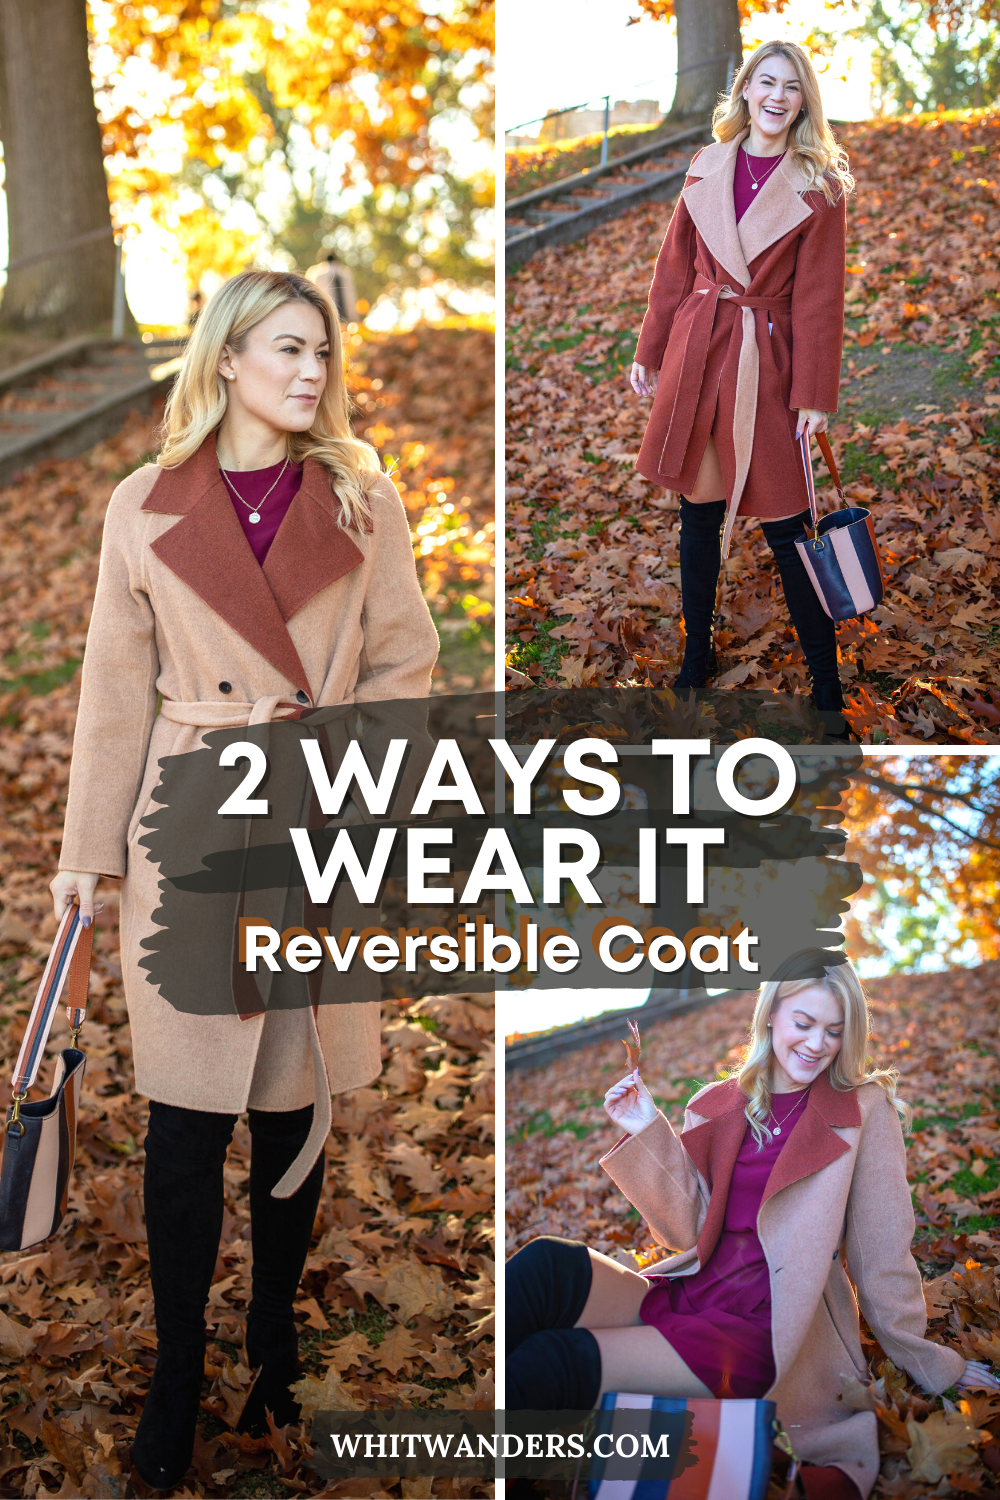 Fall Coat by popular Seattle tall fashion blog, Whit Wanders: Pinterest image of a woman wearing a M.M LaFleur Cleo Coat c/o, LuLu Burgundy Dress, OKT Boots from Nordstrom, and holding a Madewell purse.